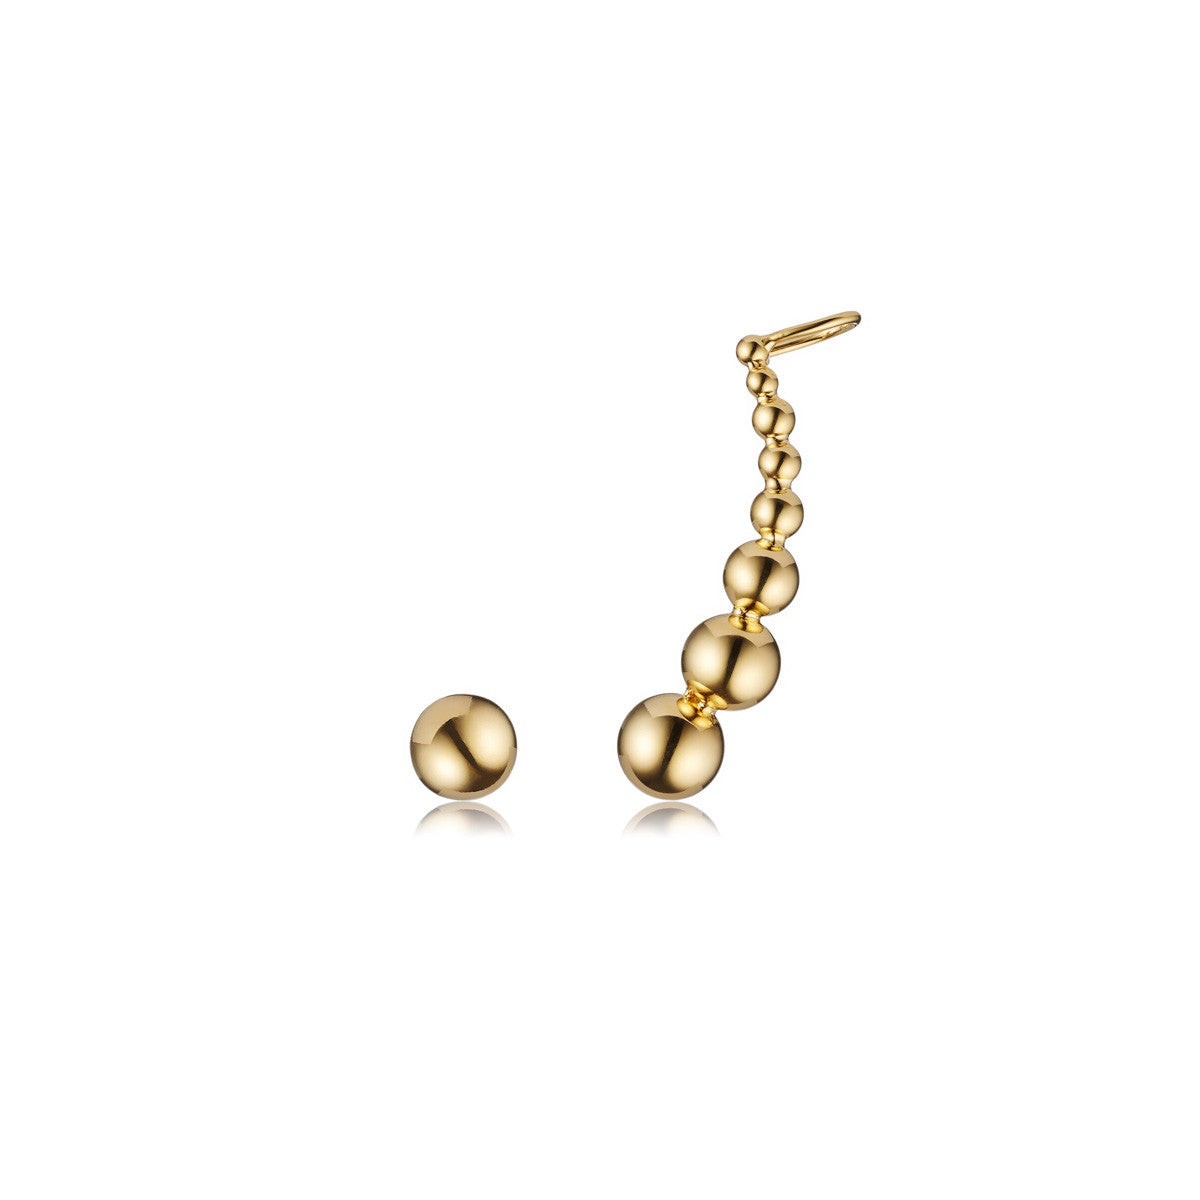 Solid brass, 18K gold plated Luna Kingdom ear cuff and stud – front